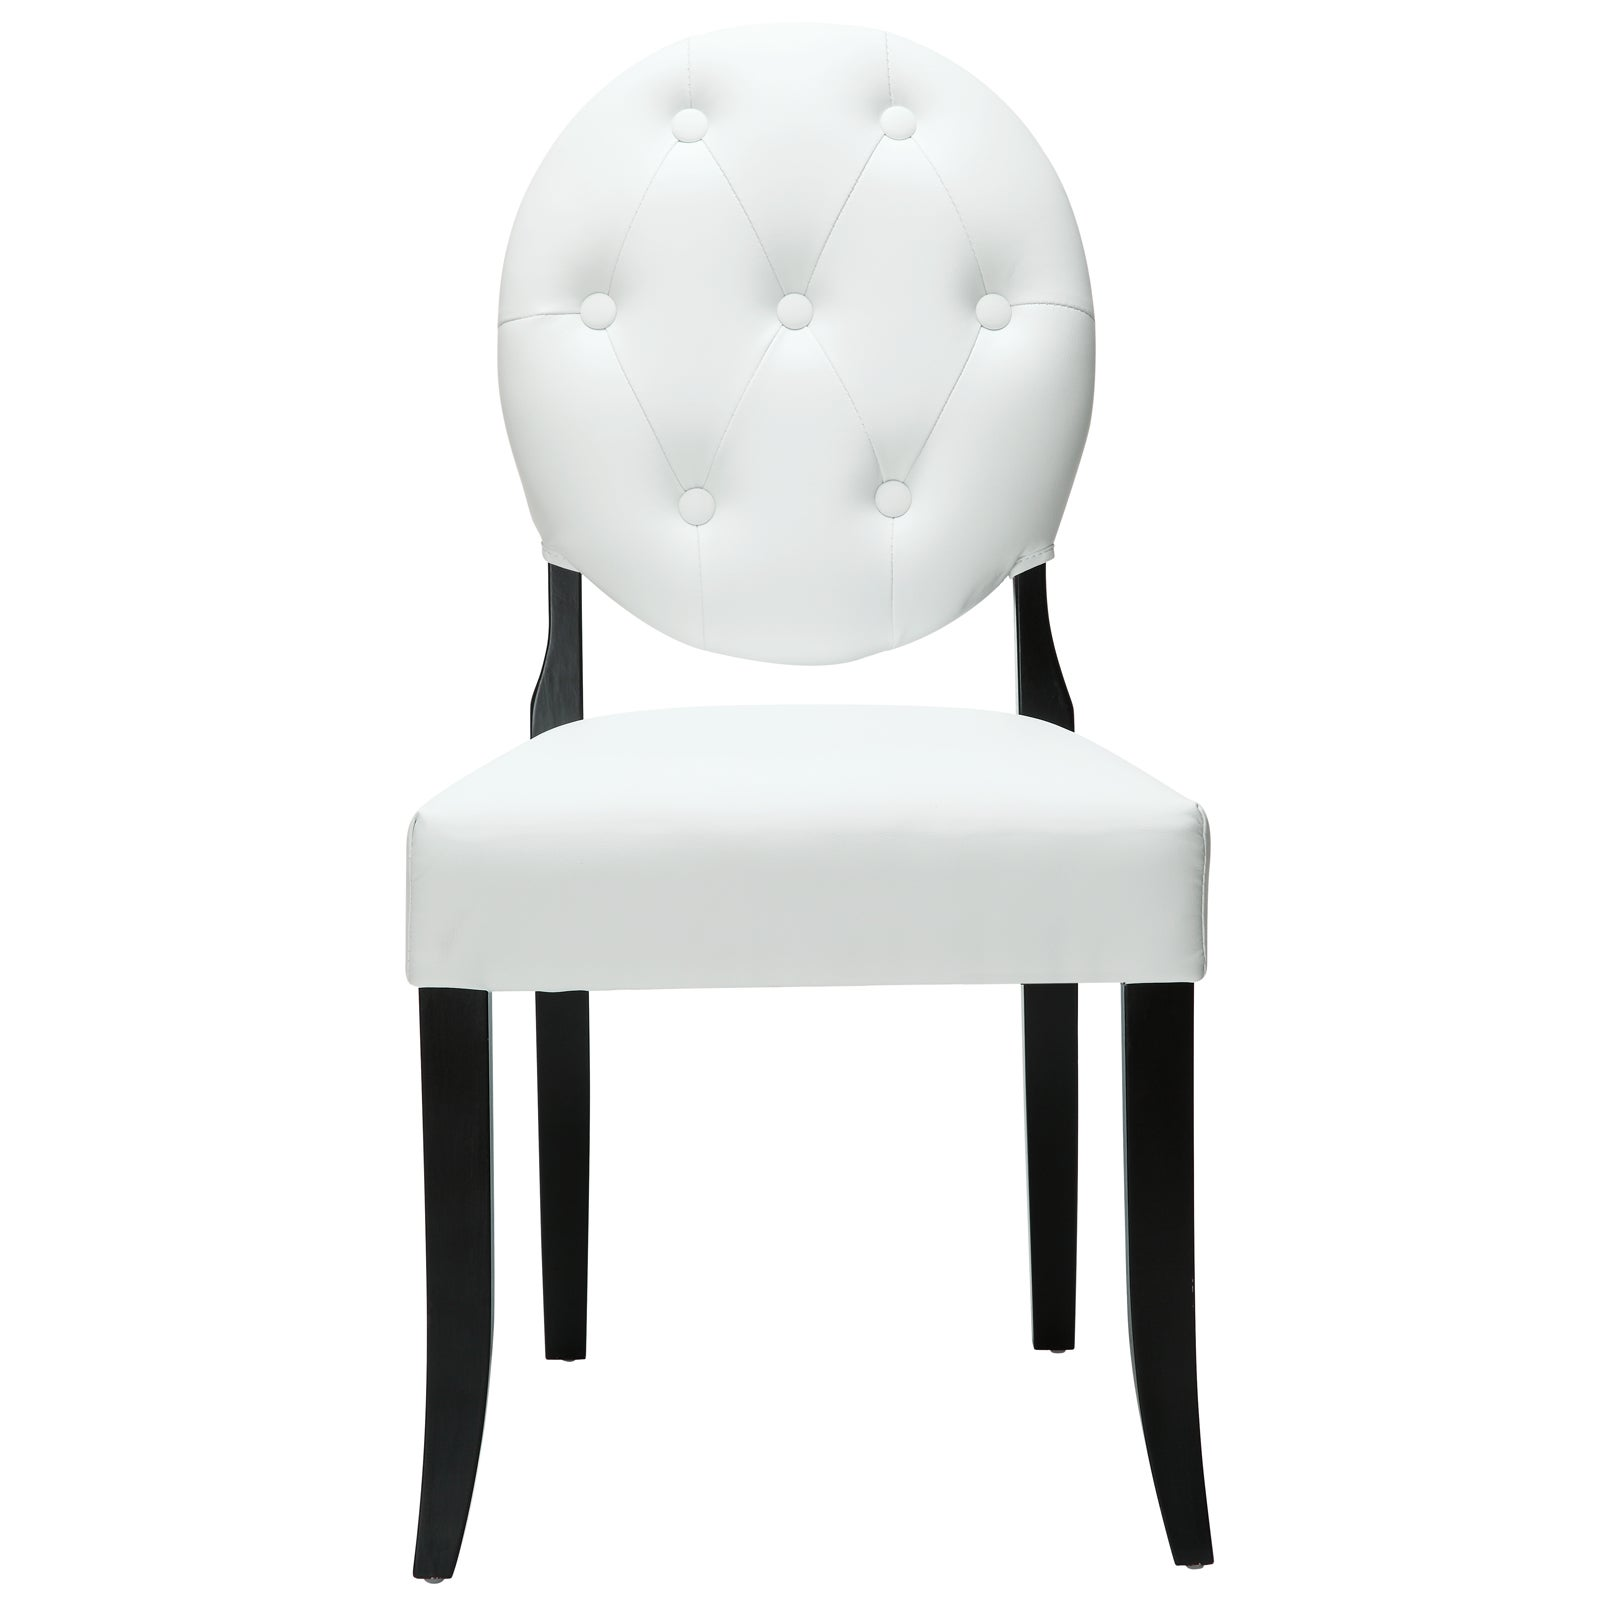 Buttoned White Vinyl Black Legs Ghost Chair